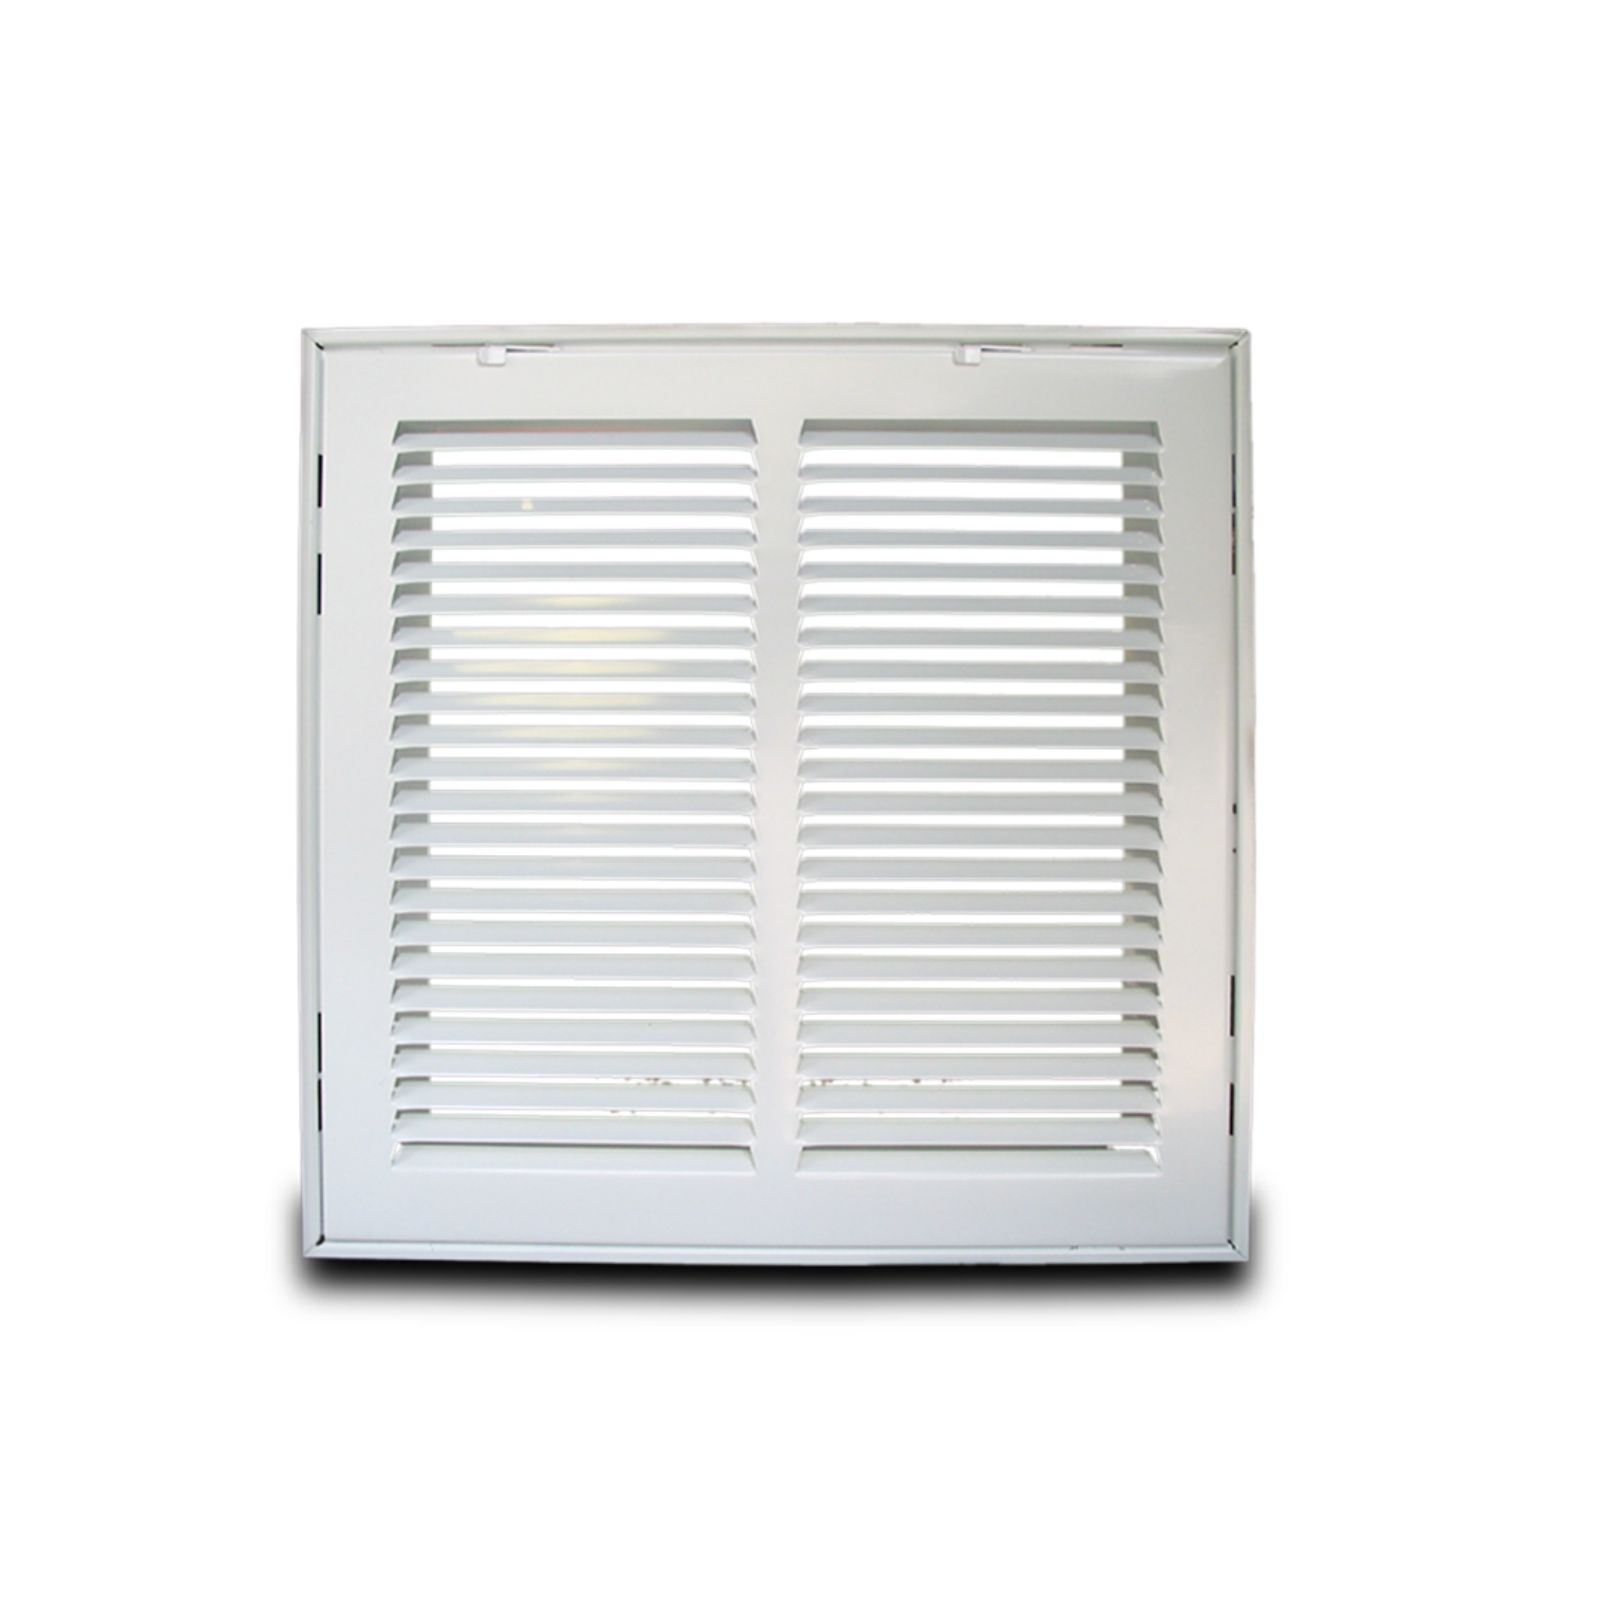 "Metal-Fab MFRFG1620W - Metal Fab Return Filter Grille, White, 16"" X 20"""